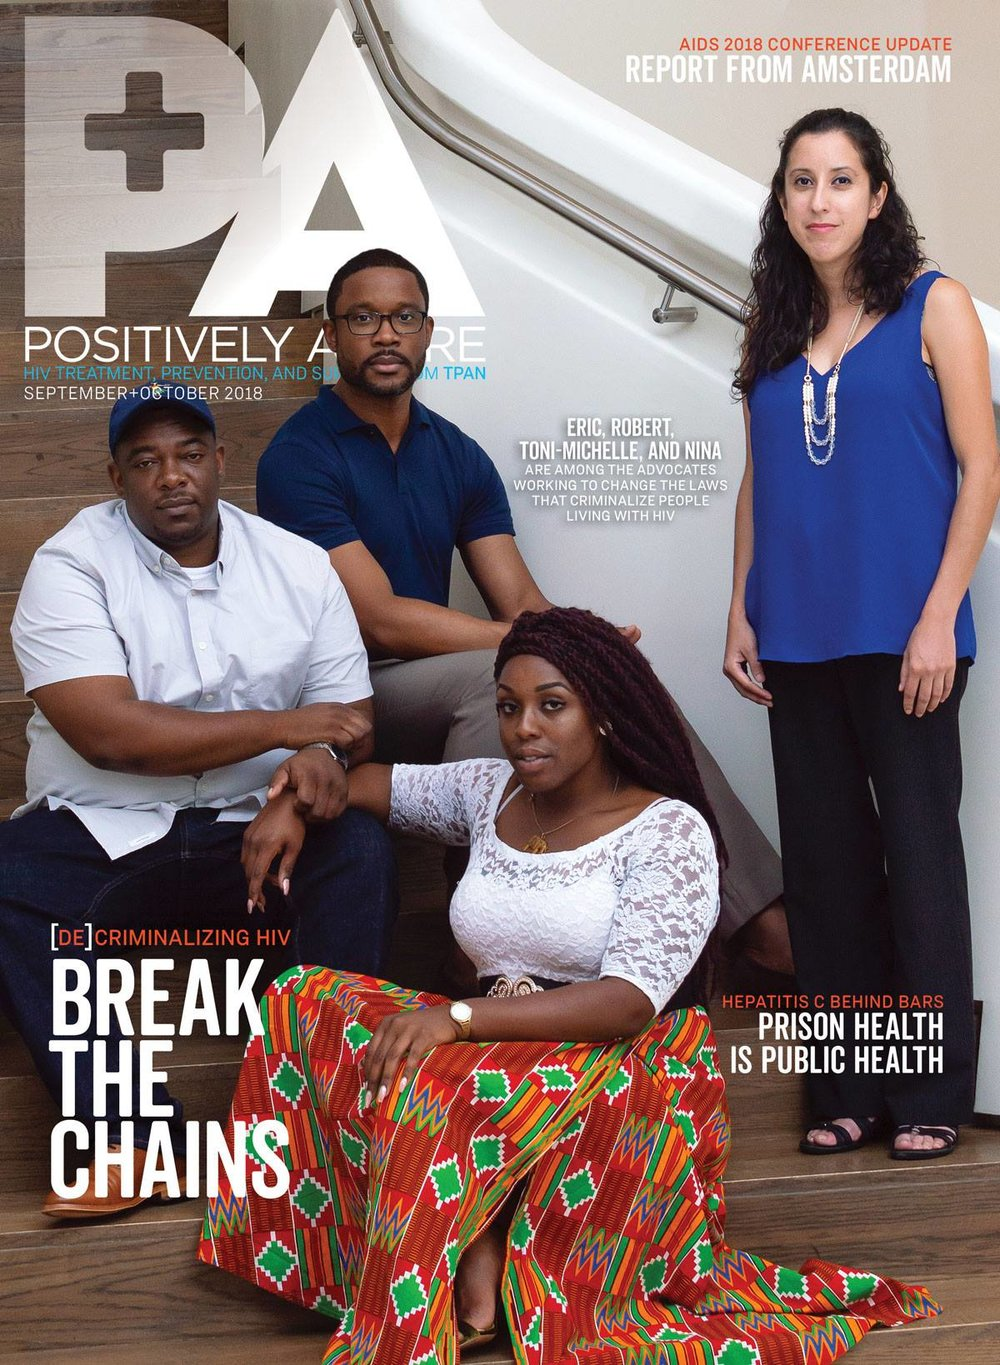 Johnnie Ray Kornegay III captured this image for Positively Aware Magazine. (From L to R: Toni-Michelle Williams, Eric Paulk, Robert Suttle and Nina Martinez are featured.)